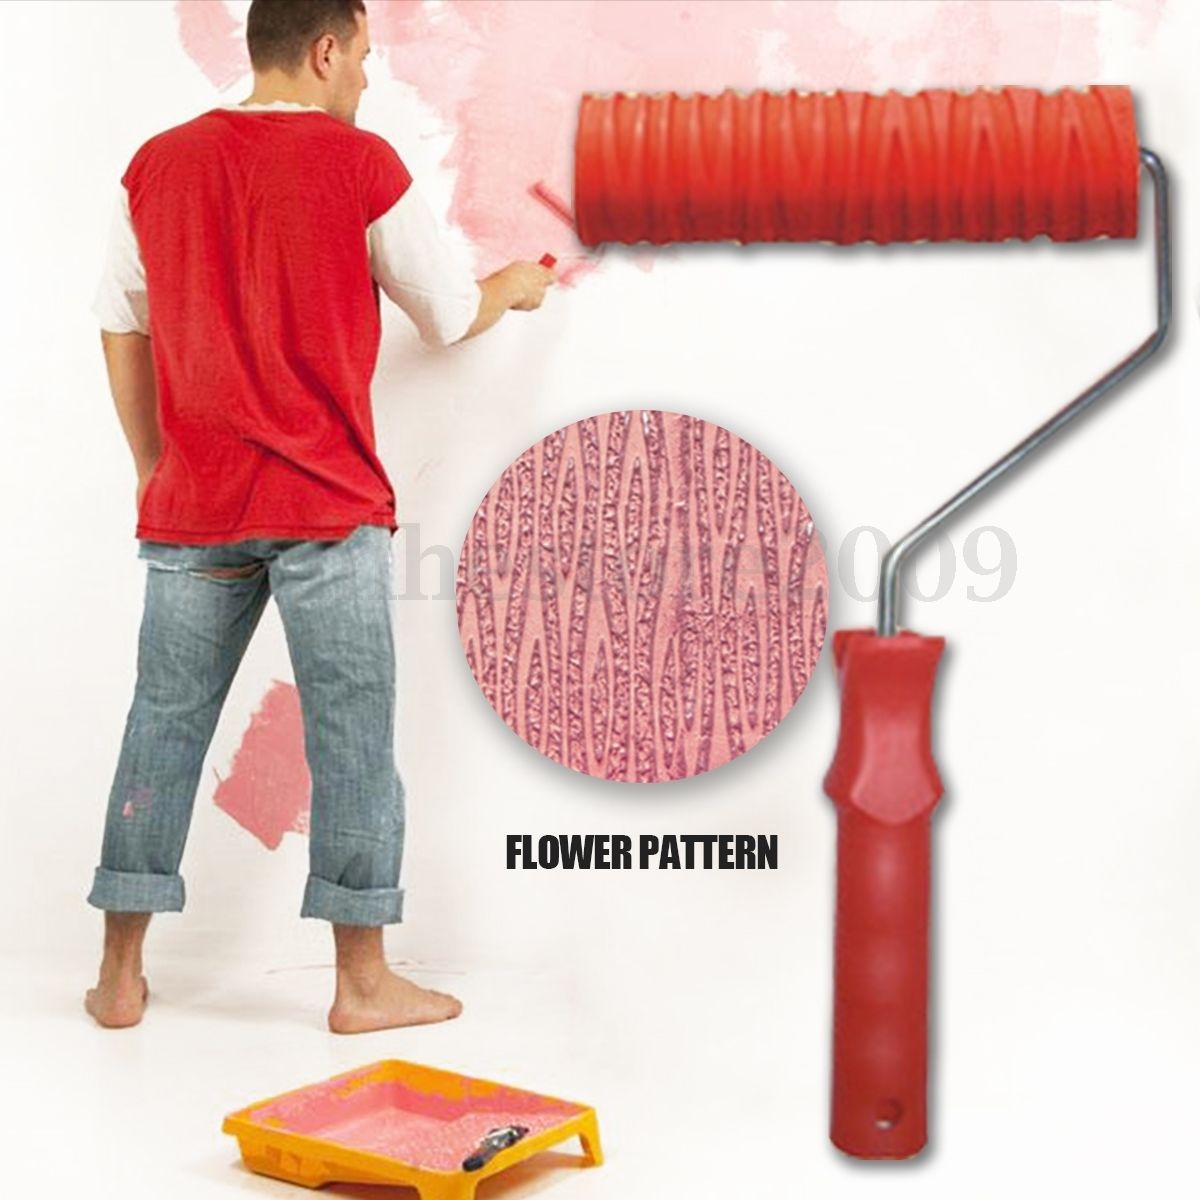 7 Embossing Tree Paint Roller Painting Brush With Handle Wall Decor Tool No 024 Painting Patterns Paint Roller